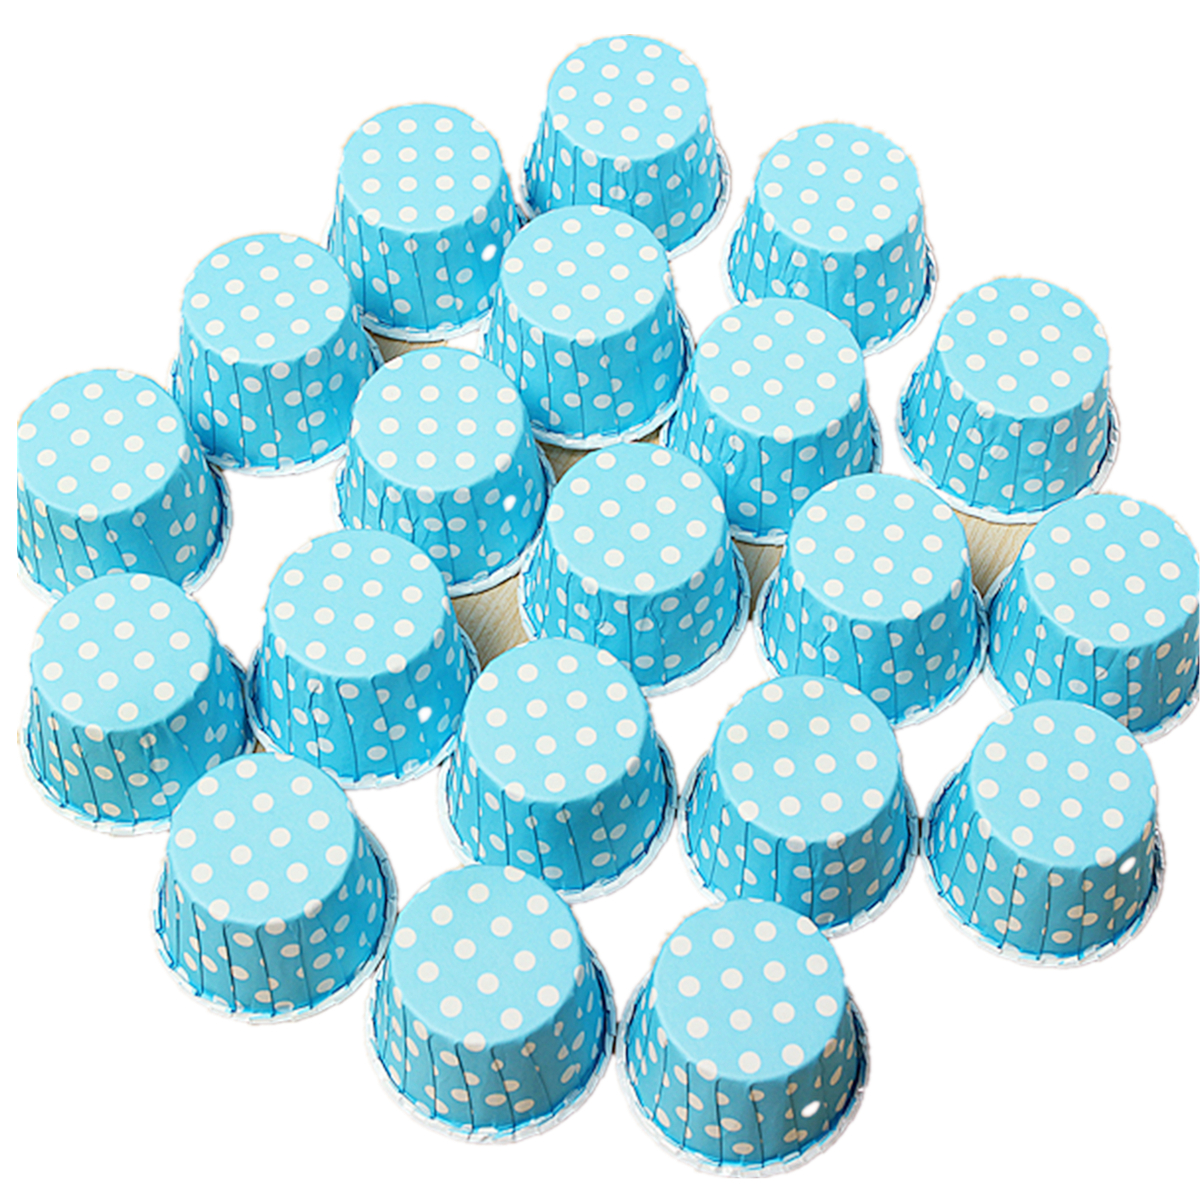 SKU170389 20Pcs Cupcake Liner Muffin Candy Nut Snack Greaseproof Dessert Baking Cups 6 Colors